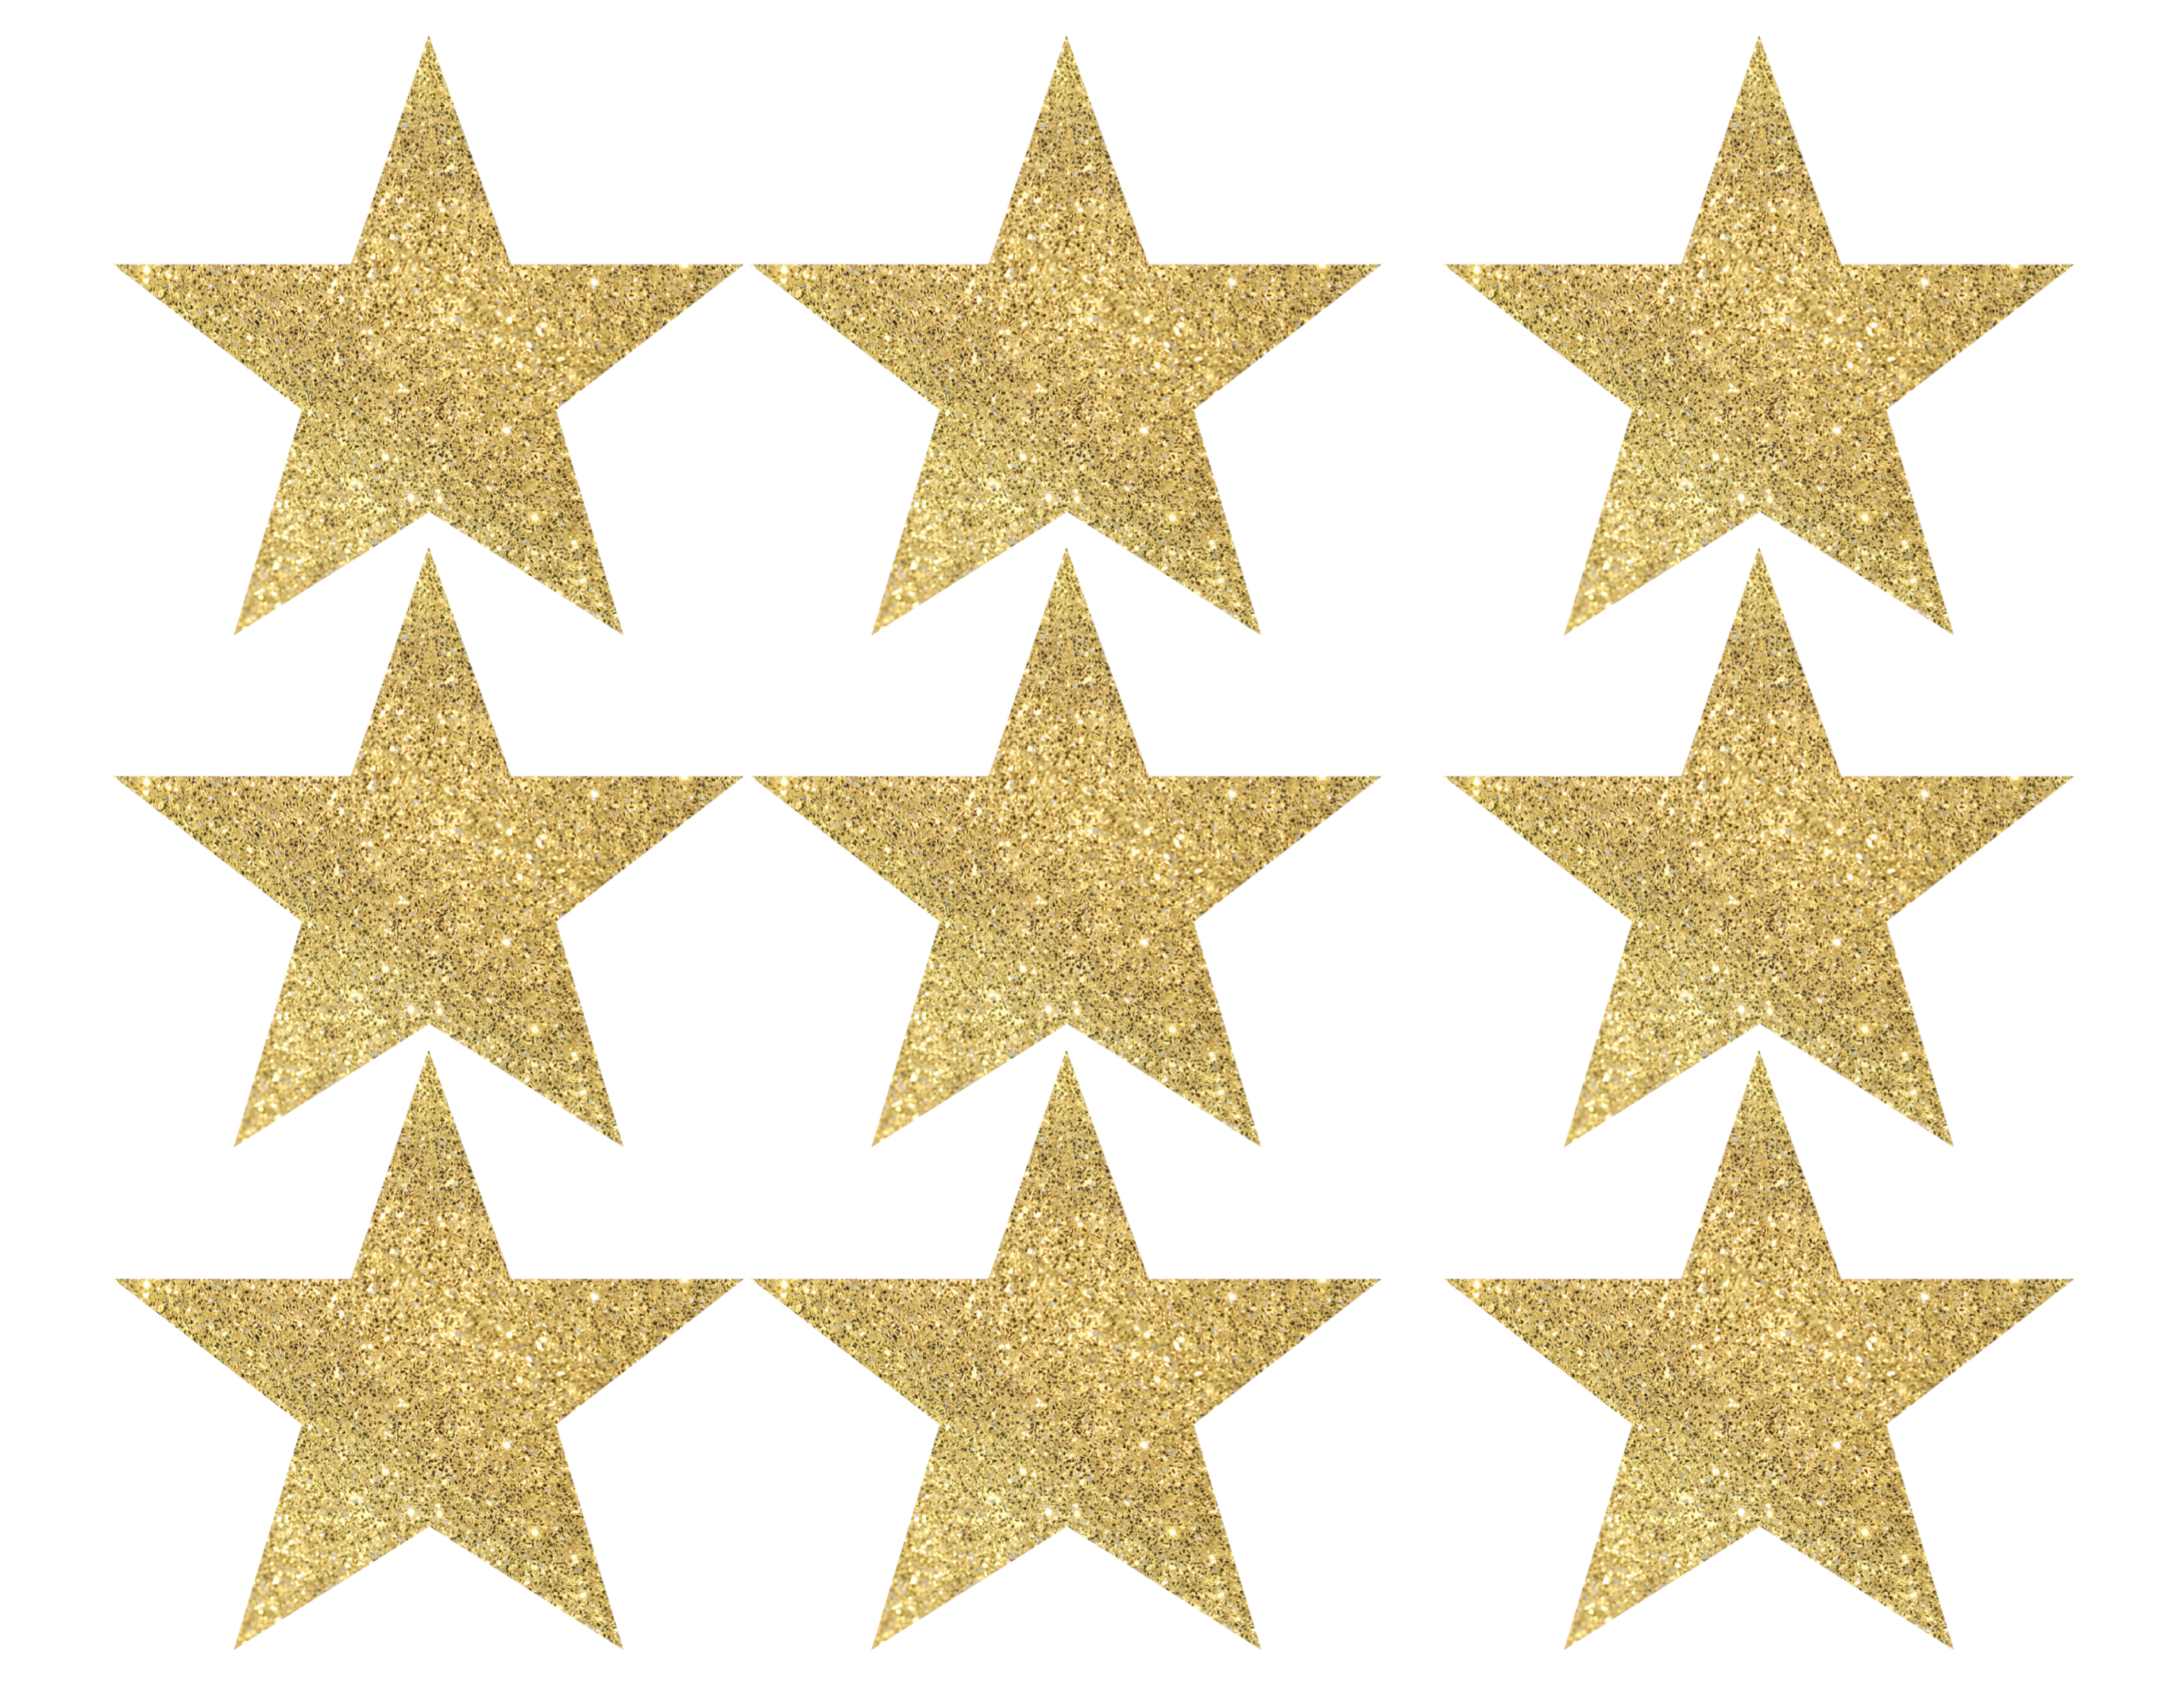 image relating to Star Printable named Gold Star Banner Xmas Garland Printable - Paper Path